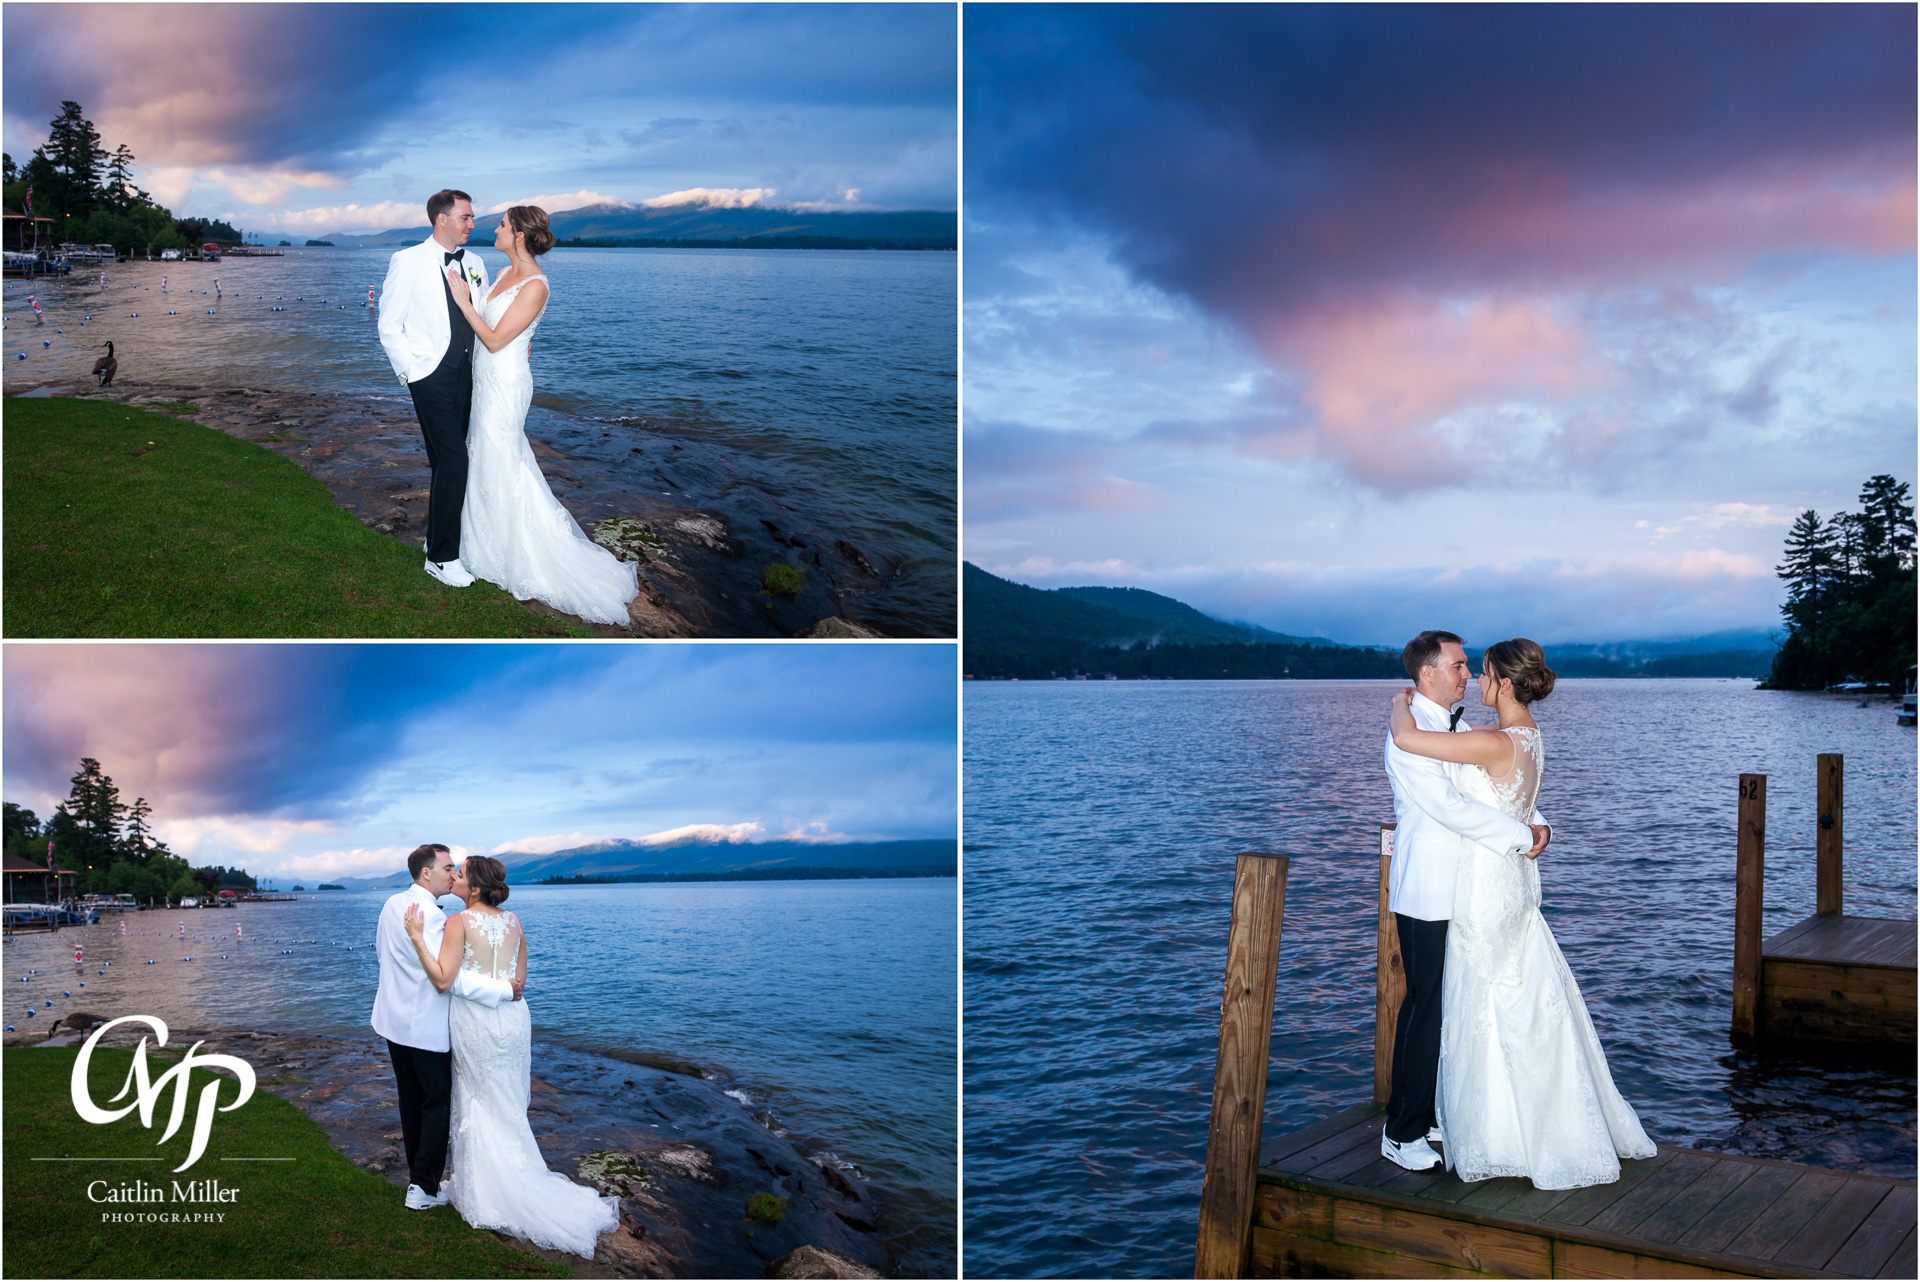 sale-20.jpg from Kendall and Chris's Lake George wedding at the Inn at Erlowest by Saratoga Wedding Photographer Caitlin Miller Photography. Lake George Wedding Photographer. Adirondack wedding photographer. Albany wedding photographer. Lake Placid Wedding Photographer. Saratoga Wedding Photographer